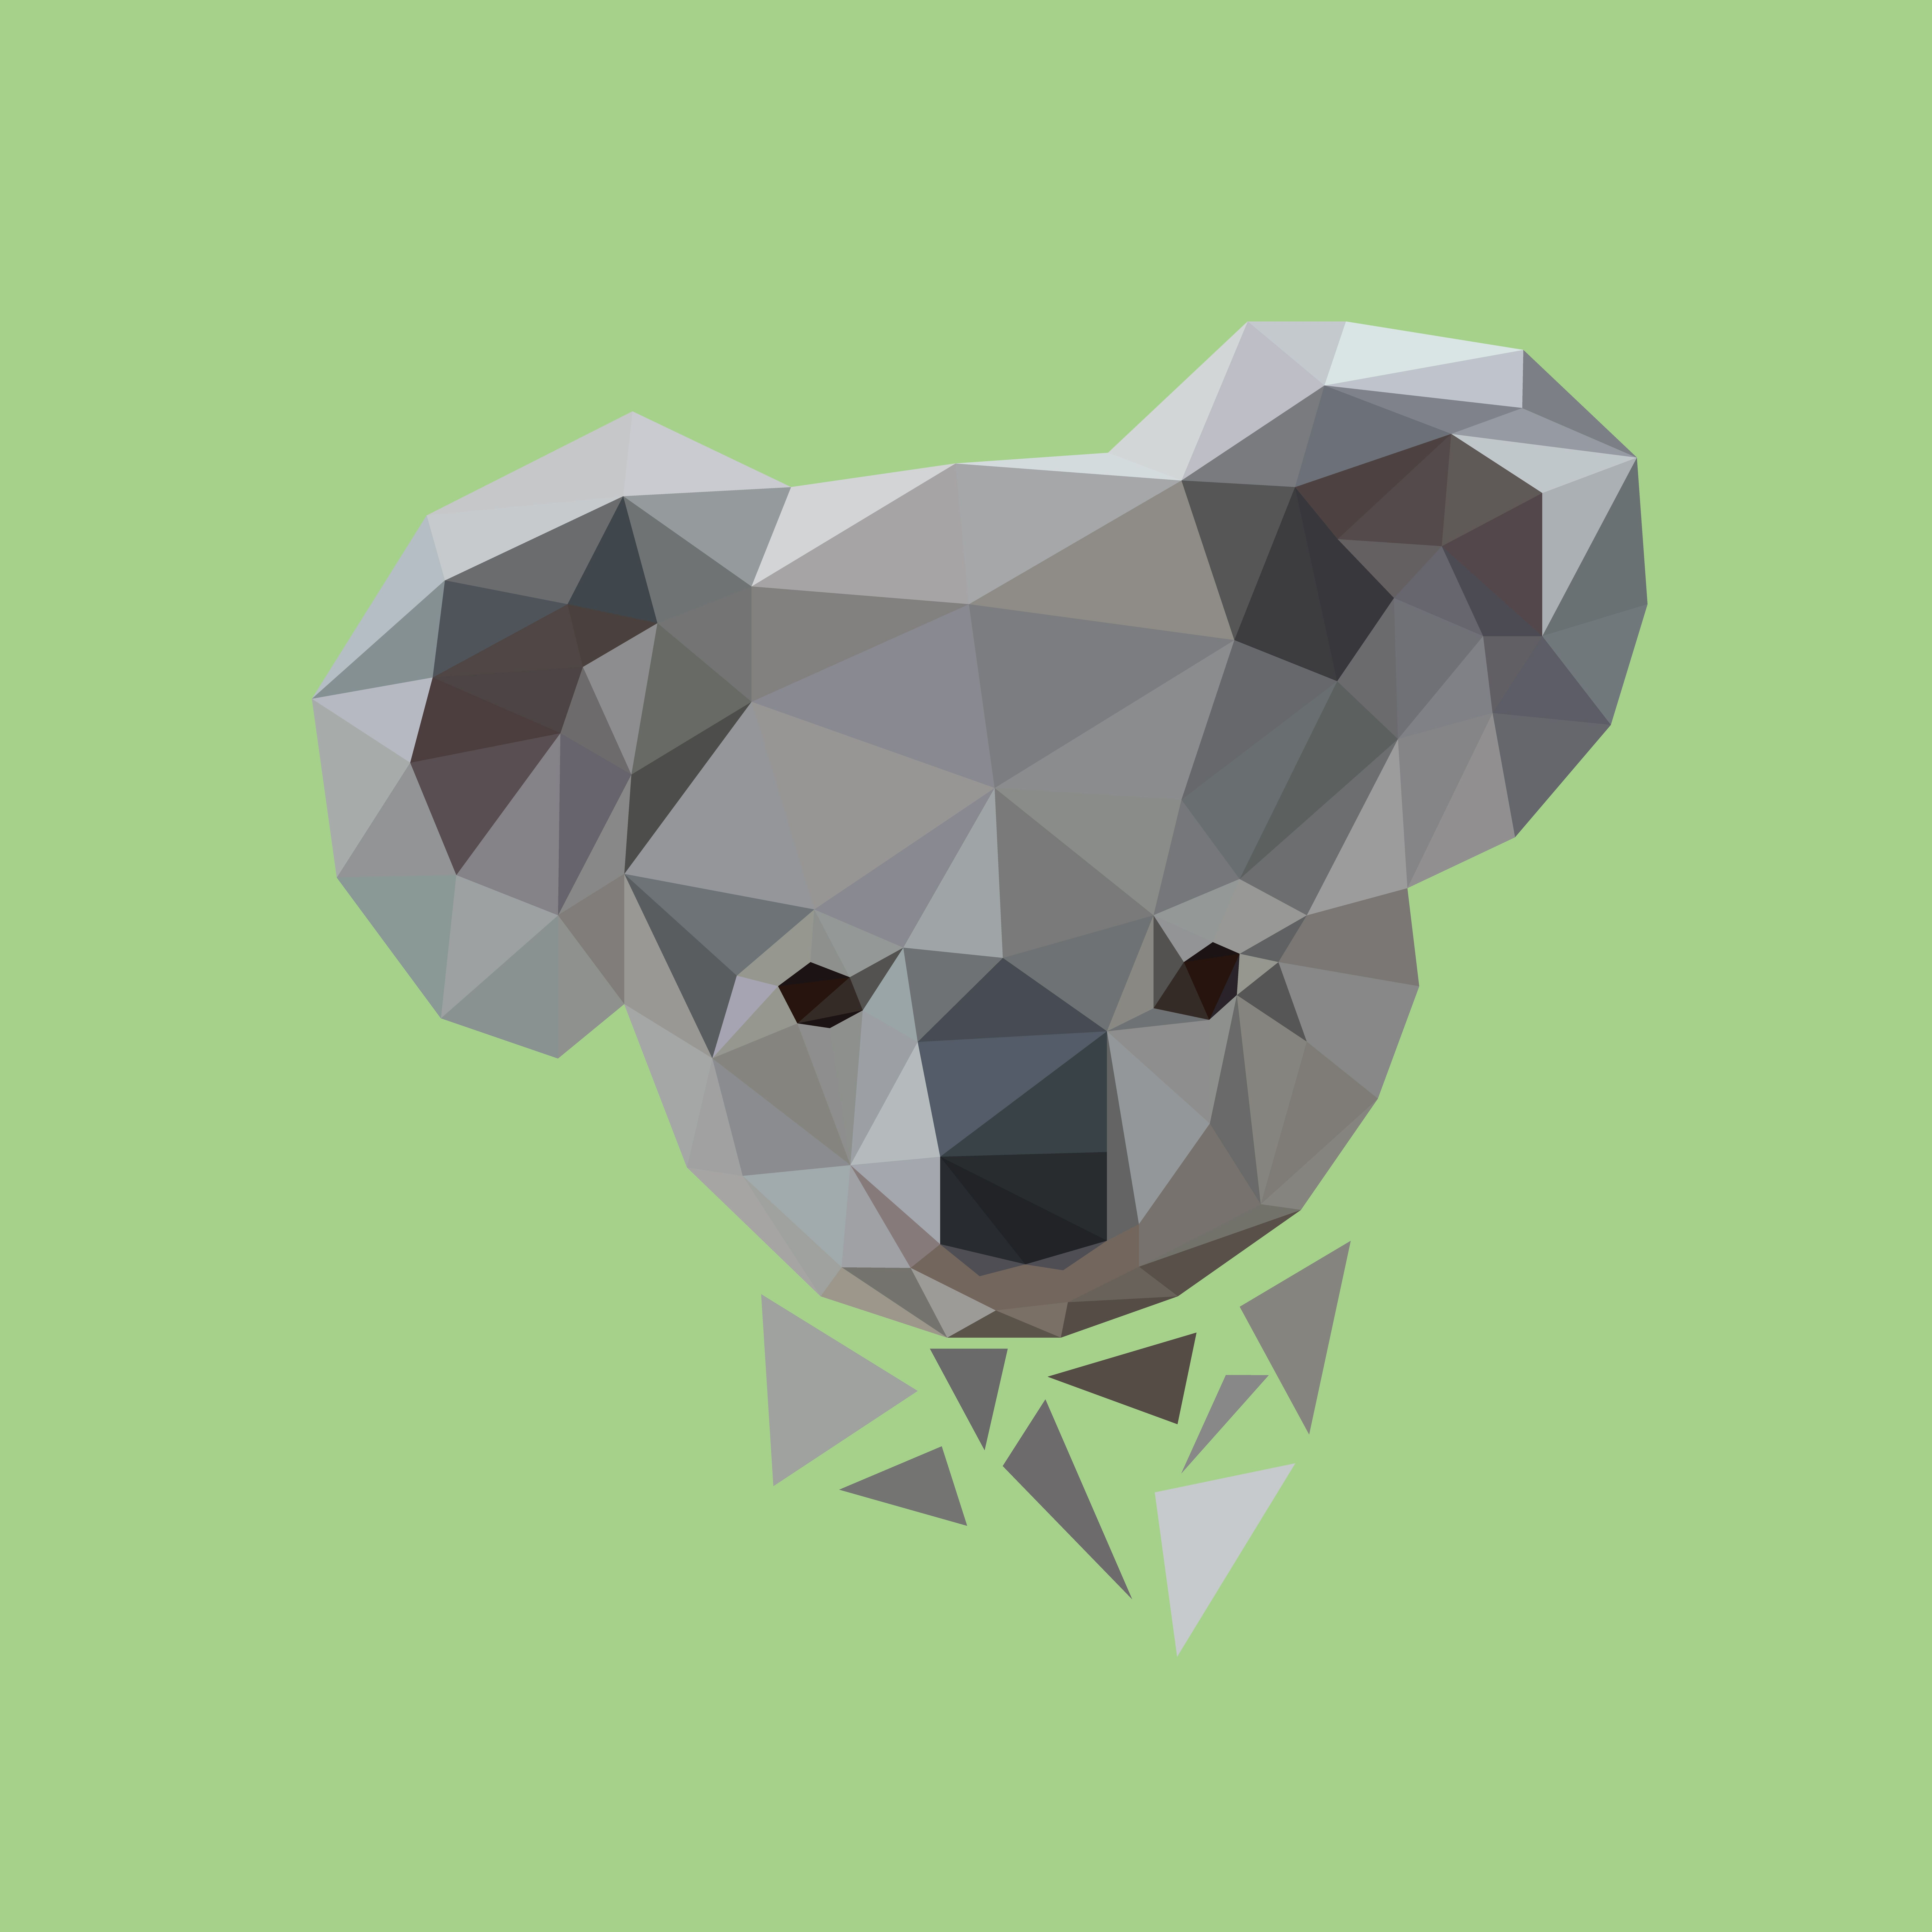 8000x8000 Low Poly Koala Face! Now Available On Vector Graphics Online